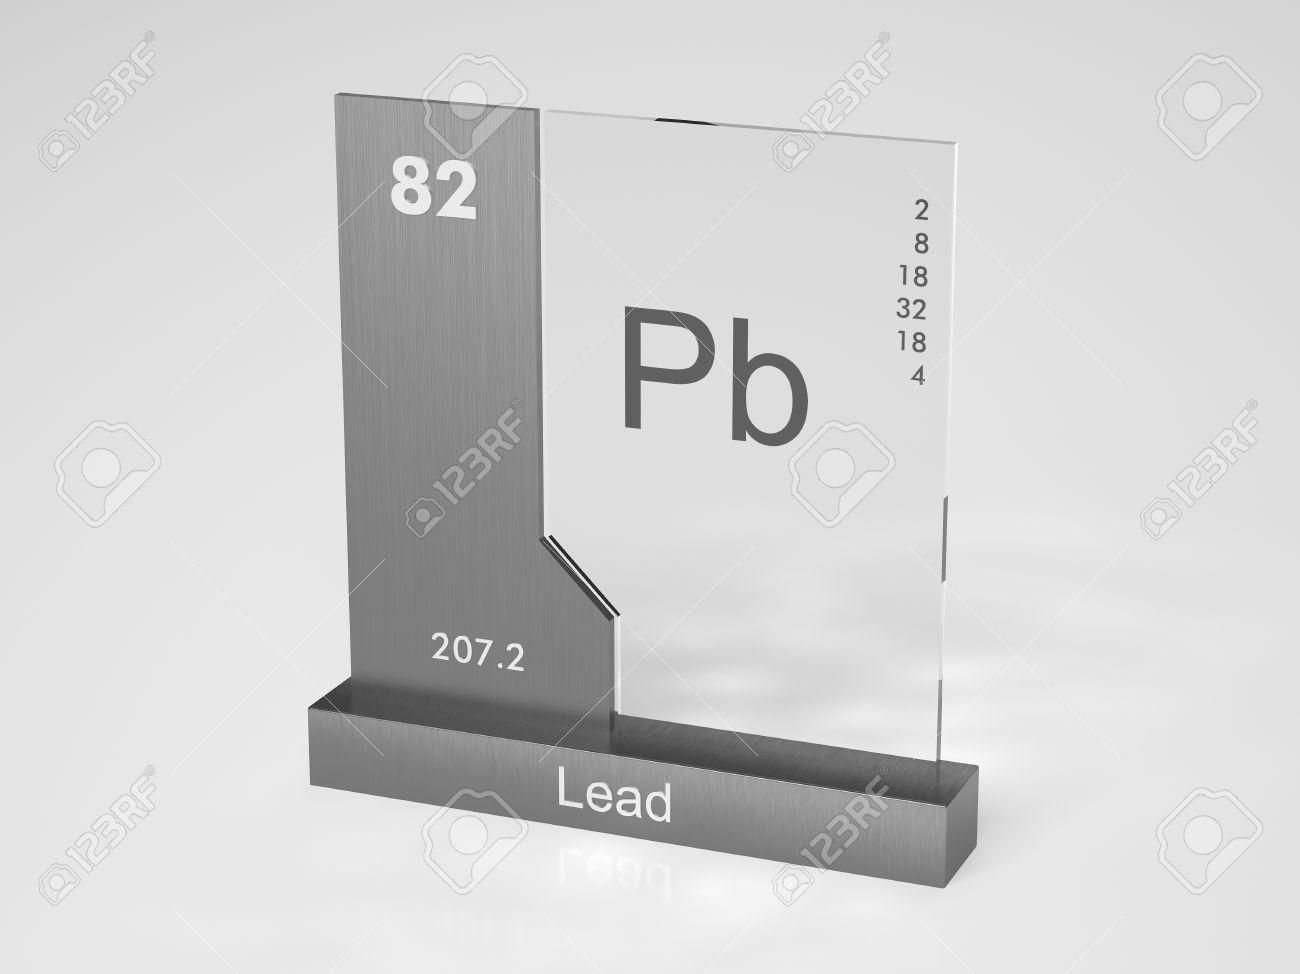 Lead periodic table gallery periodic table images lead symbol pb chemical element of the periodic table stock lead symbol pb chemical element of gamestrikefo Gallery